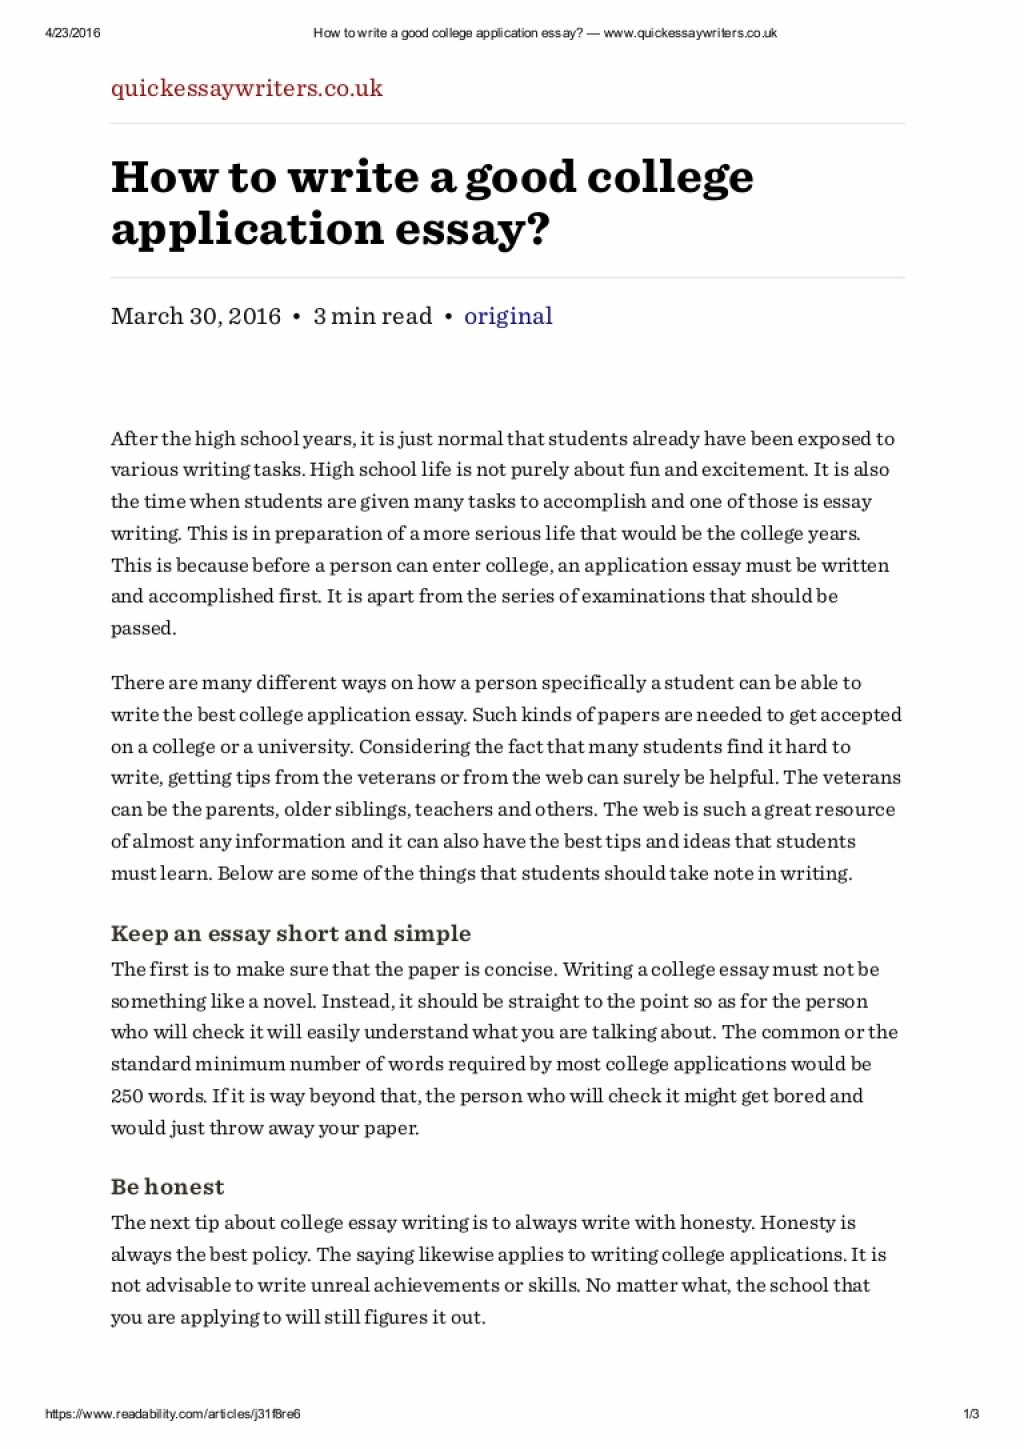 002 How To Write The Perfect College Application Essay Howtowriteagoodcollegeapplicationessaywww Thumbnail Staggering A Good Nytimes Examples Large